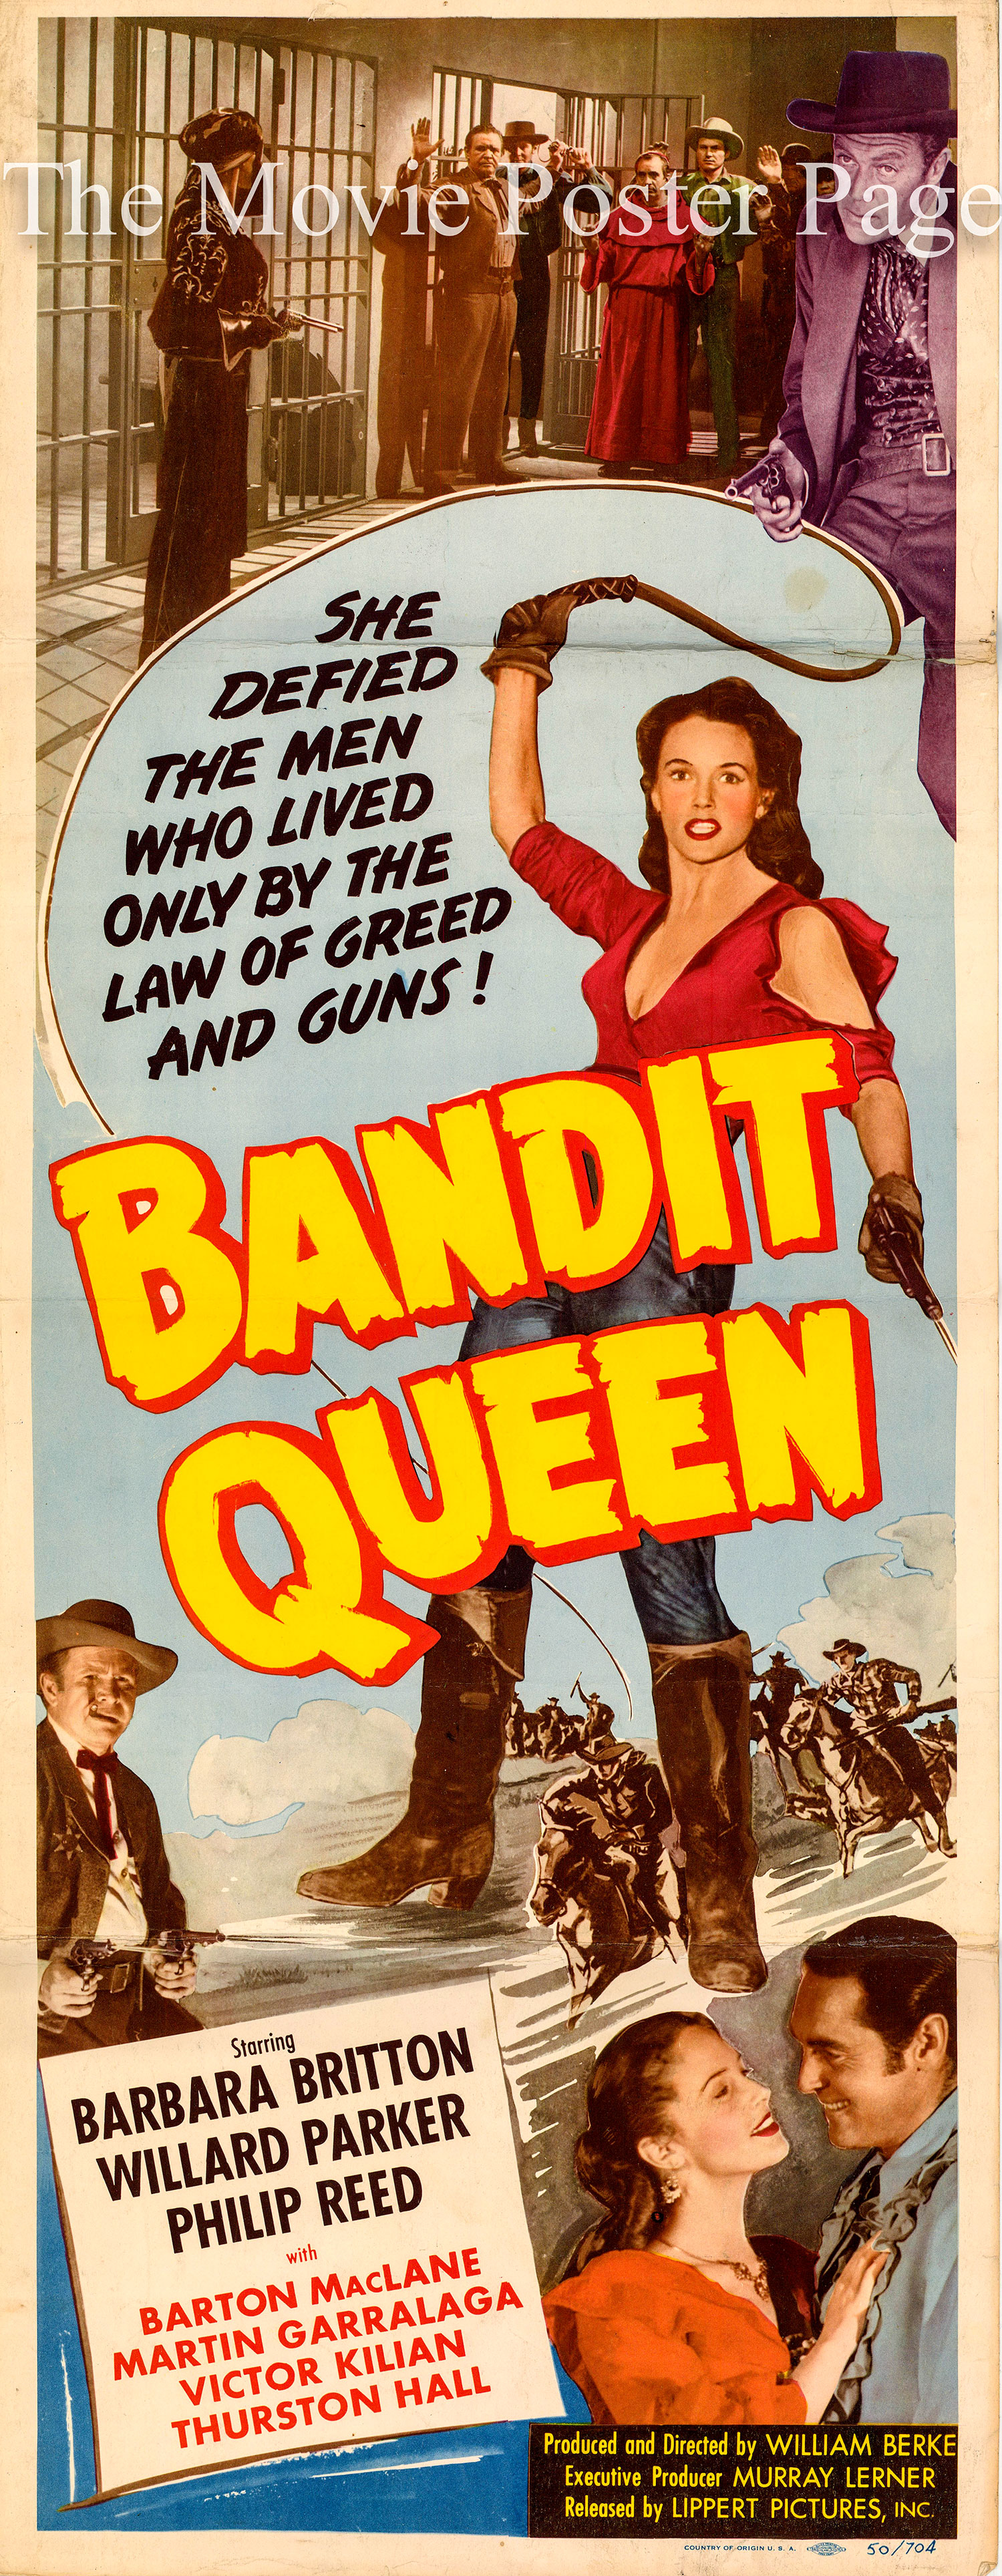 Pictured is a US insert promotional poster for the 1950 William Berke film Bandit Queen starring Barbara Britton.